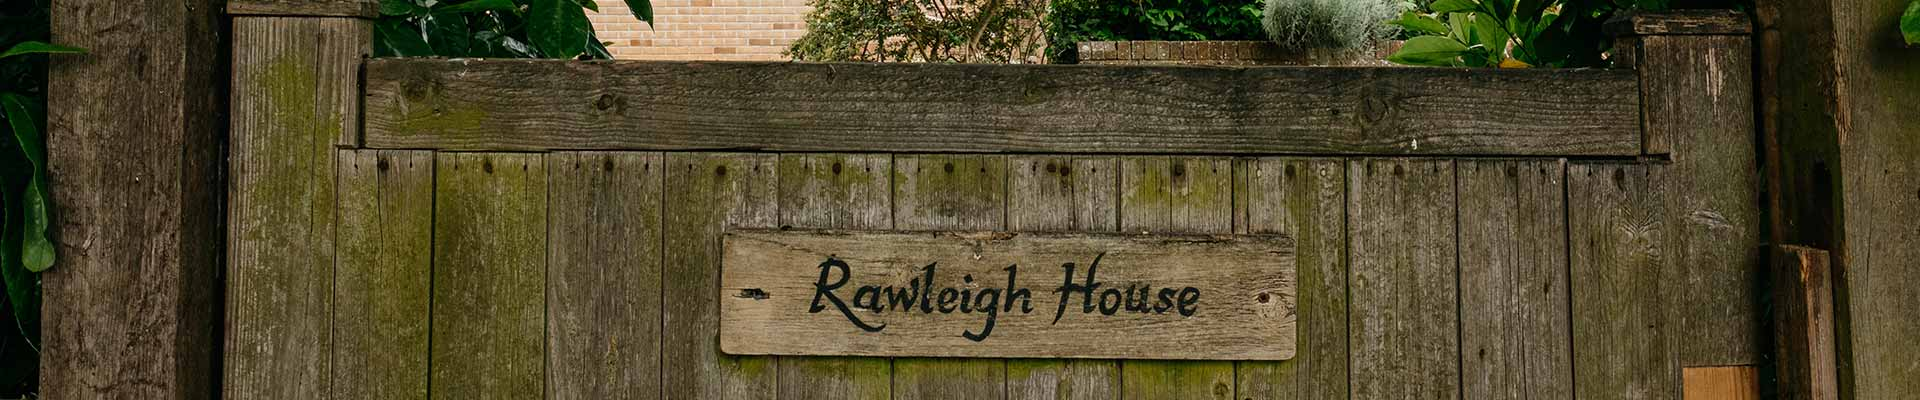 Rawleigh House Residential Care in North Dorset